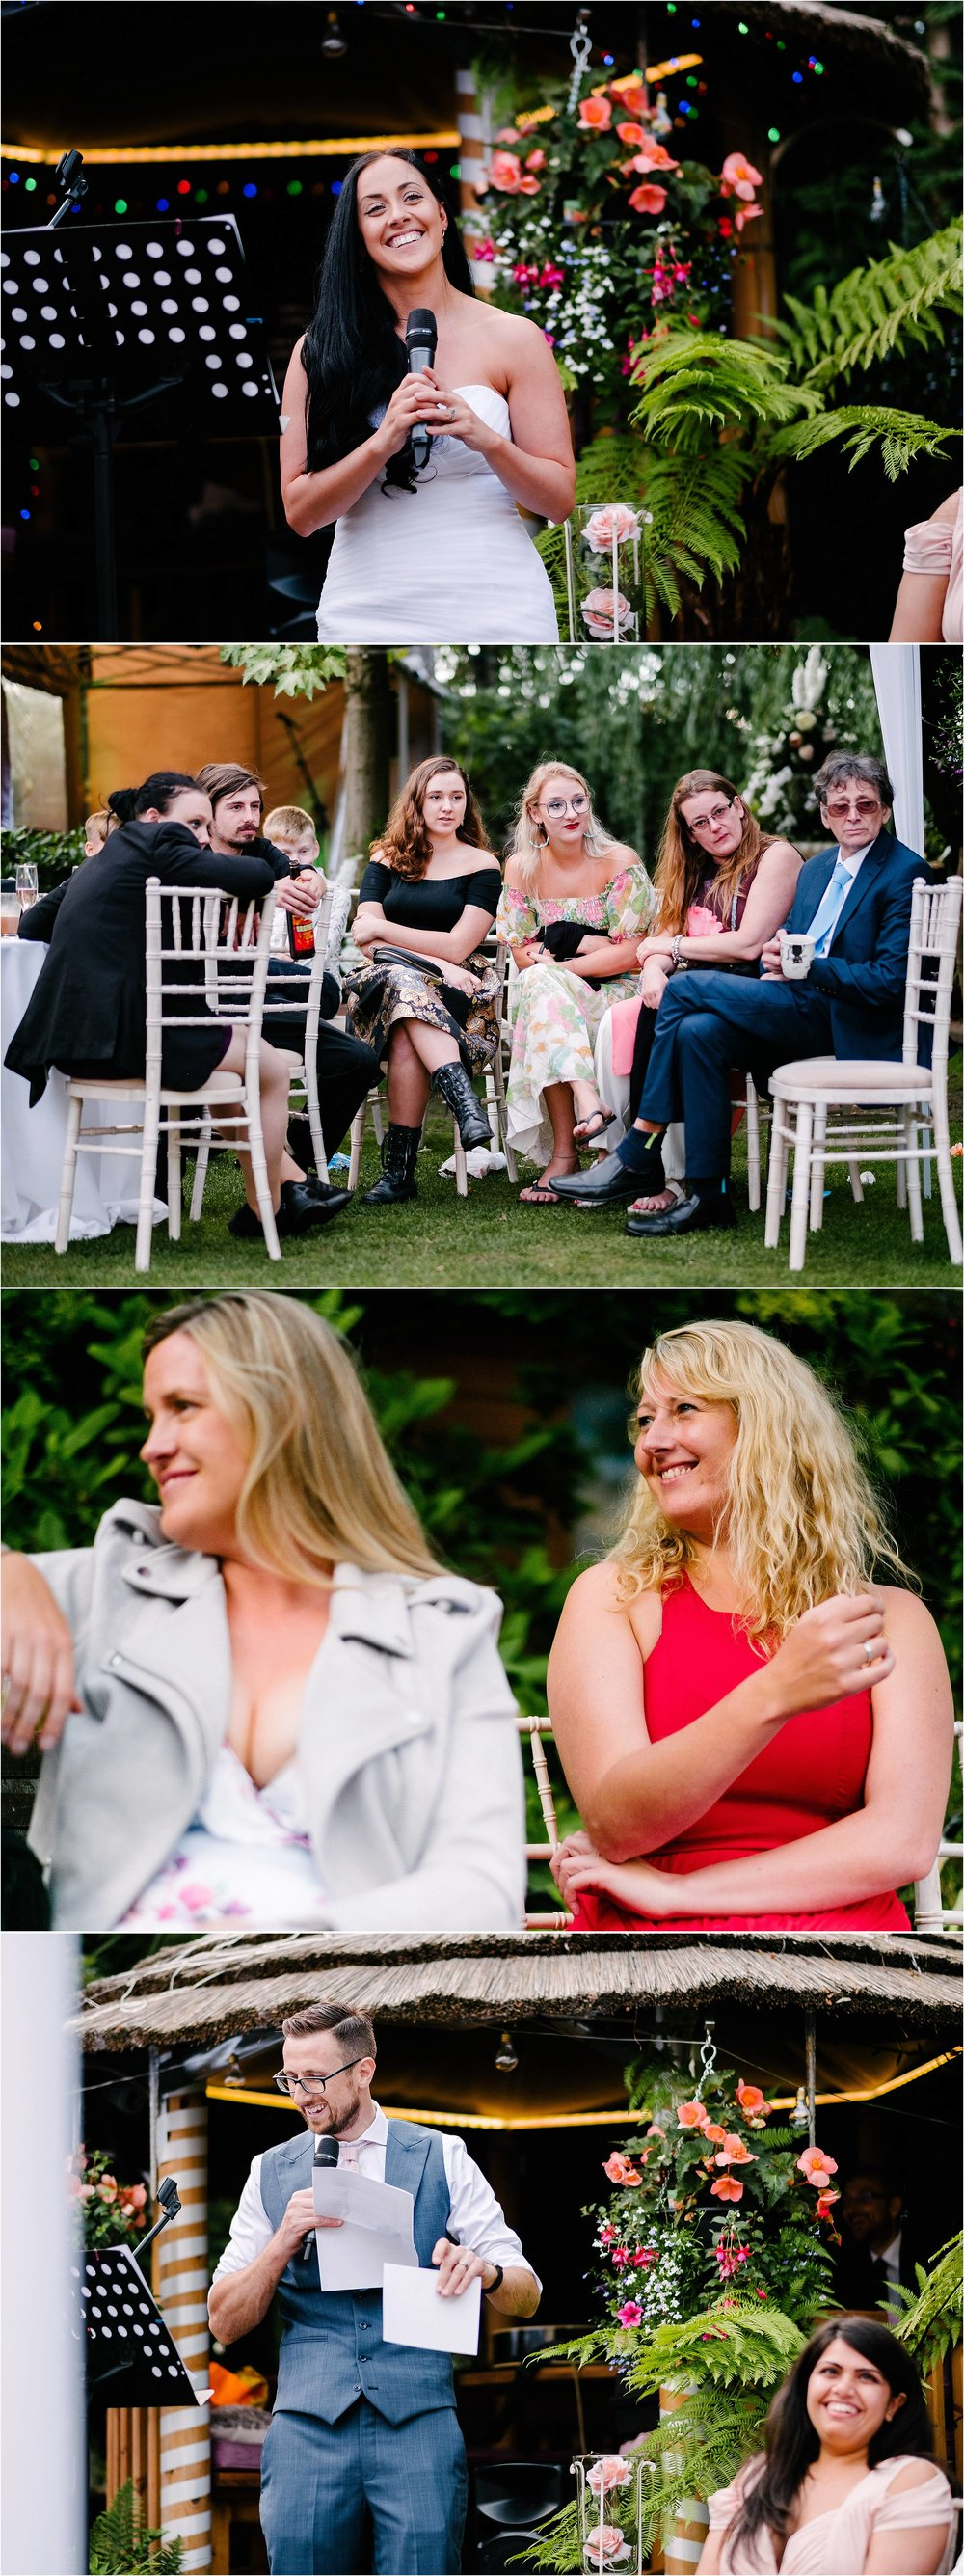 At home back garden wedding photographer_0085.jpg